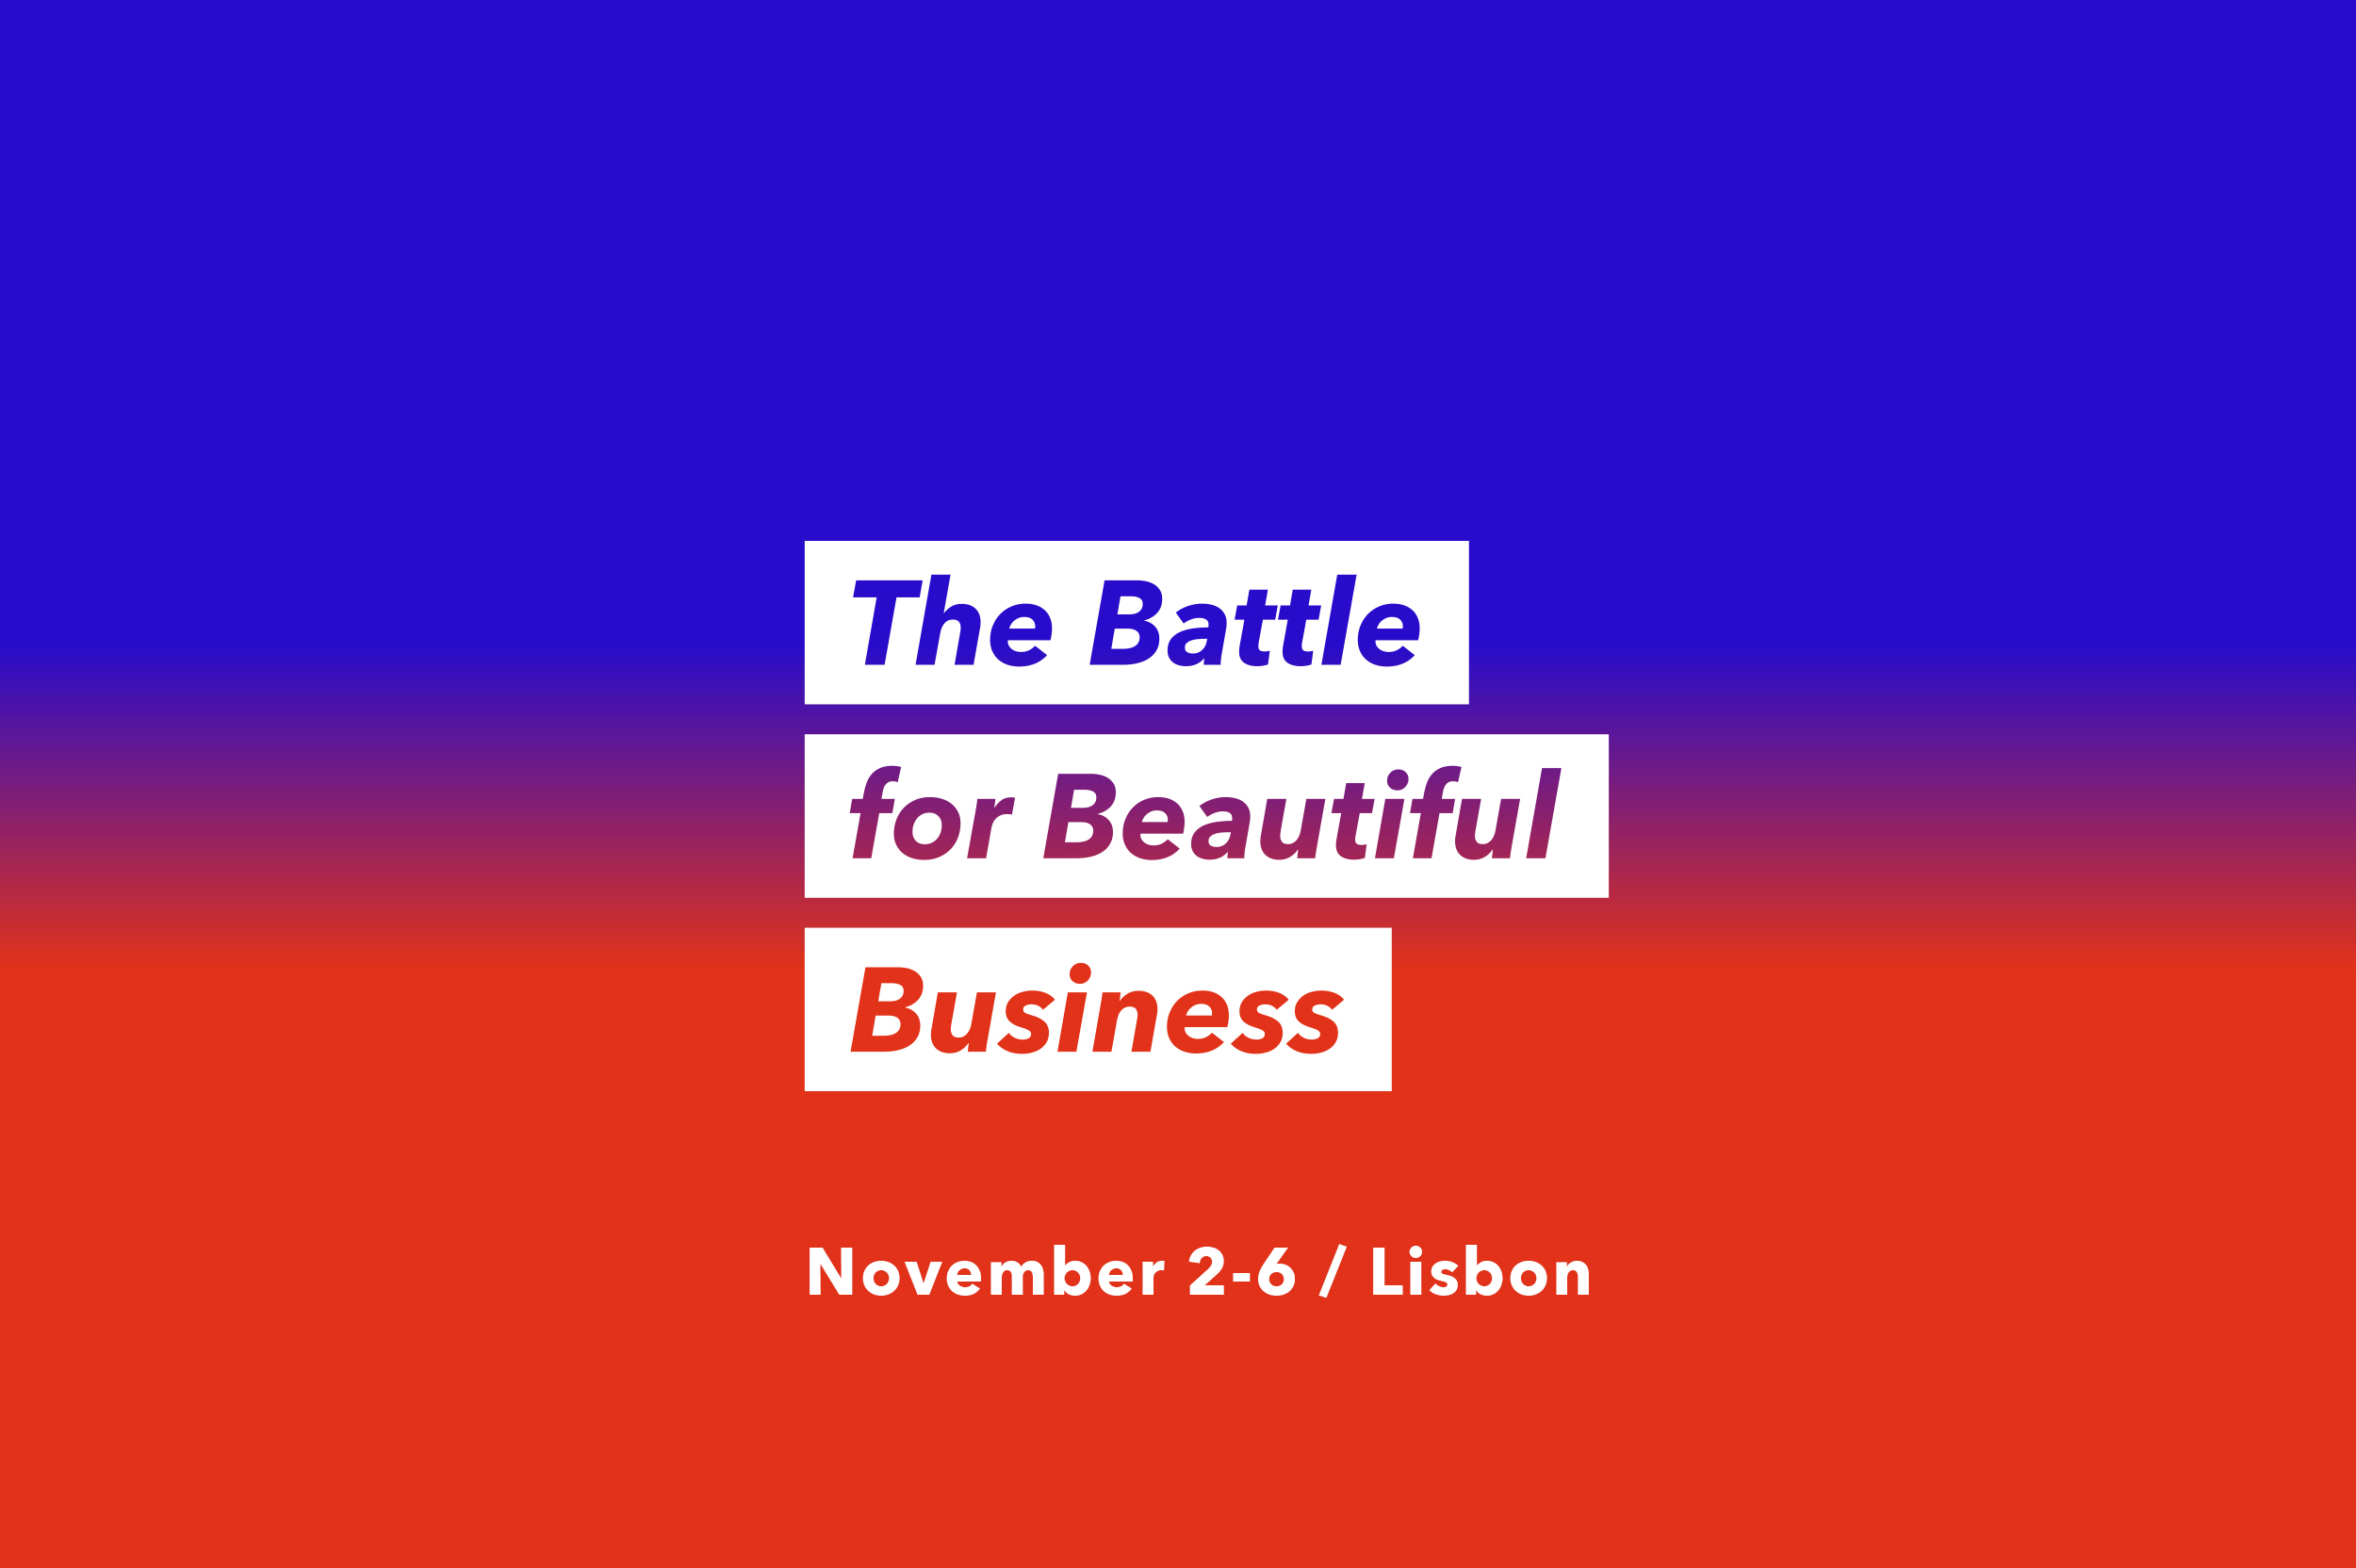 House of Beautiful Business 2019